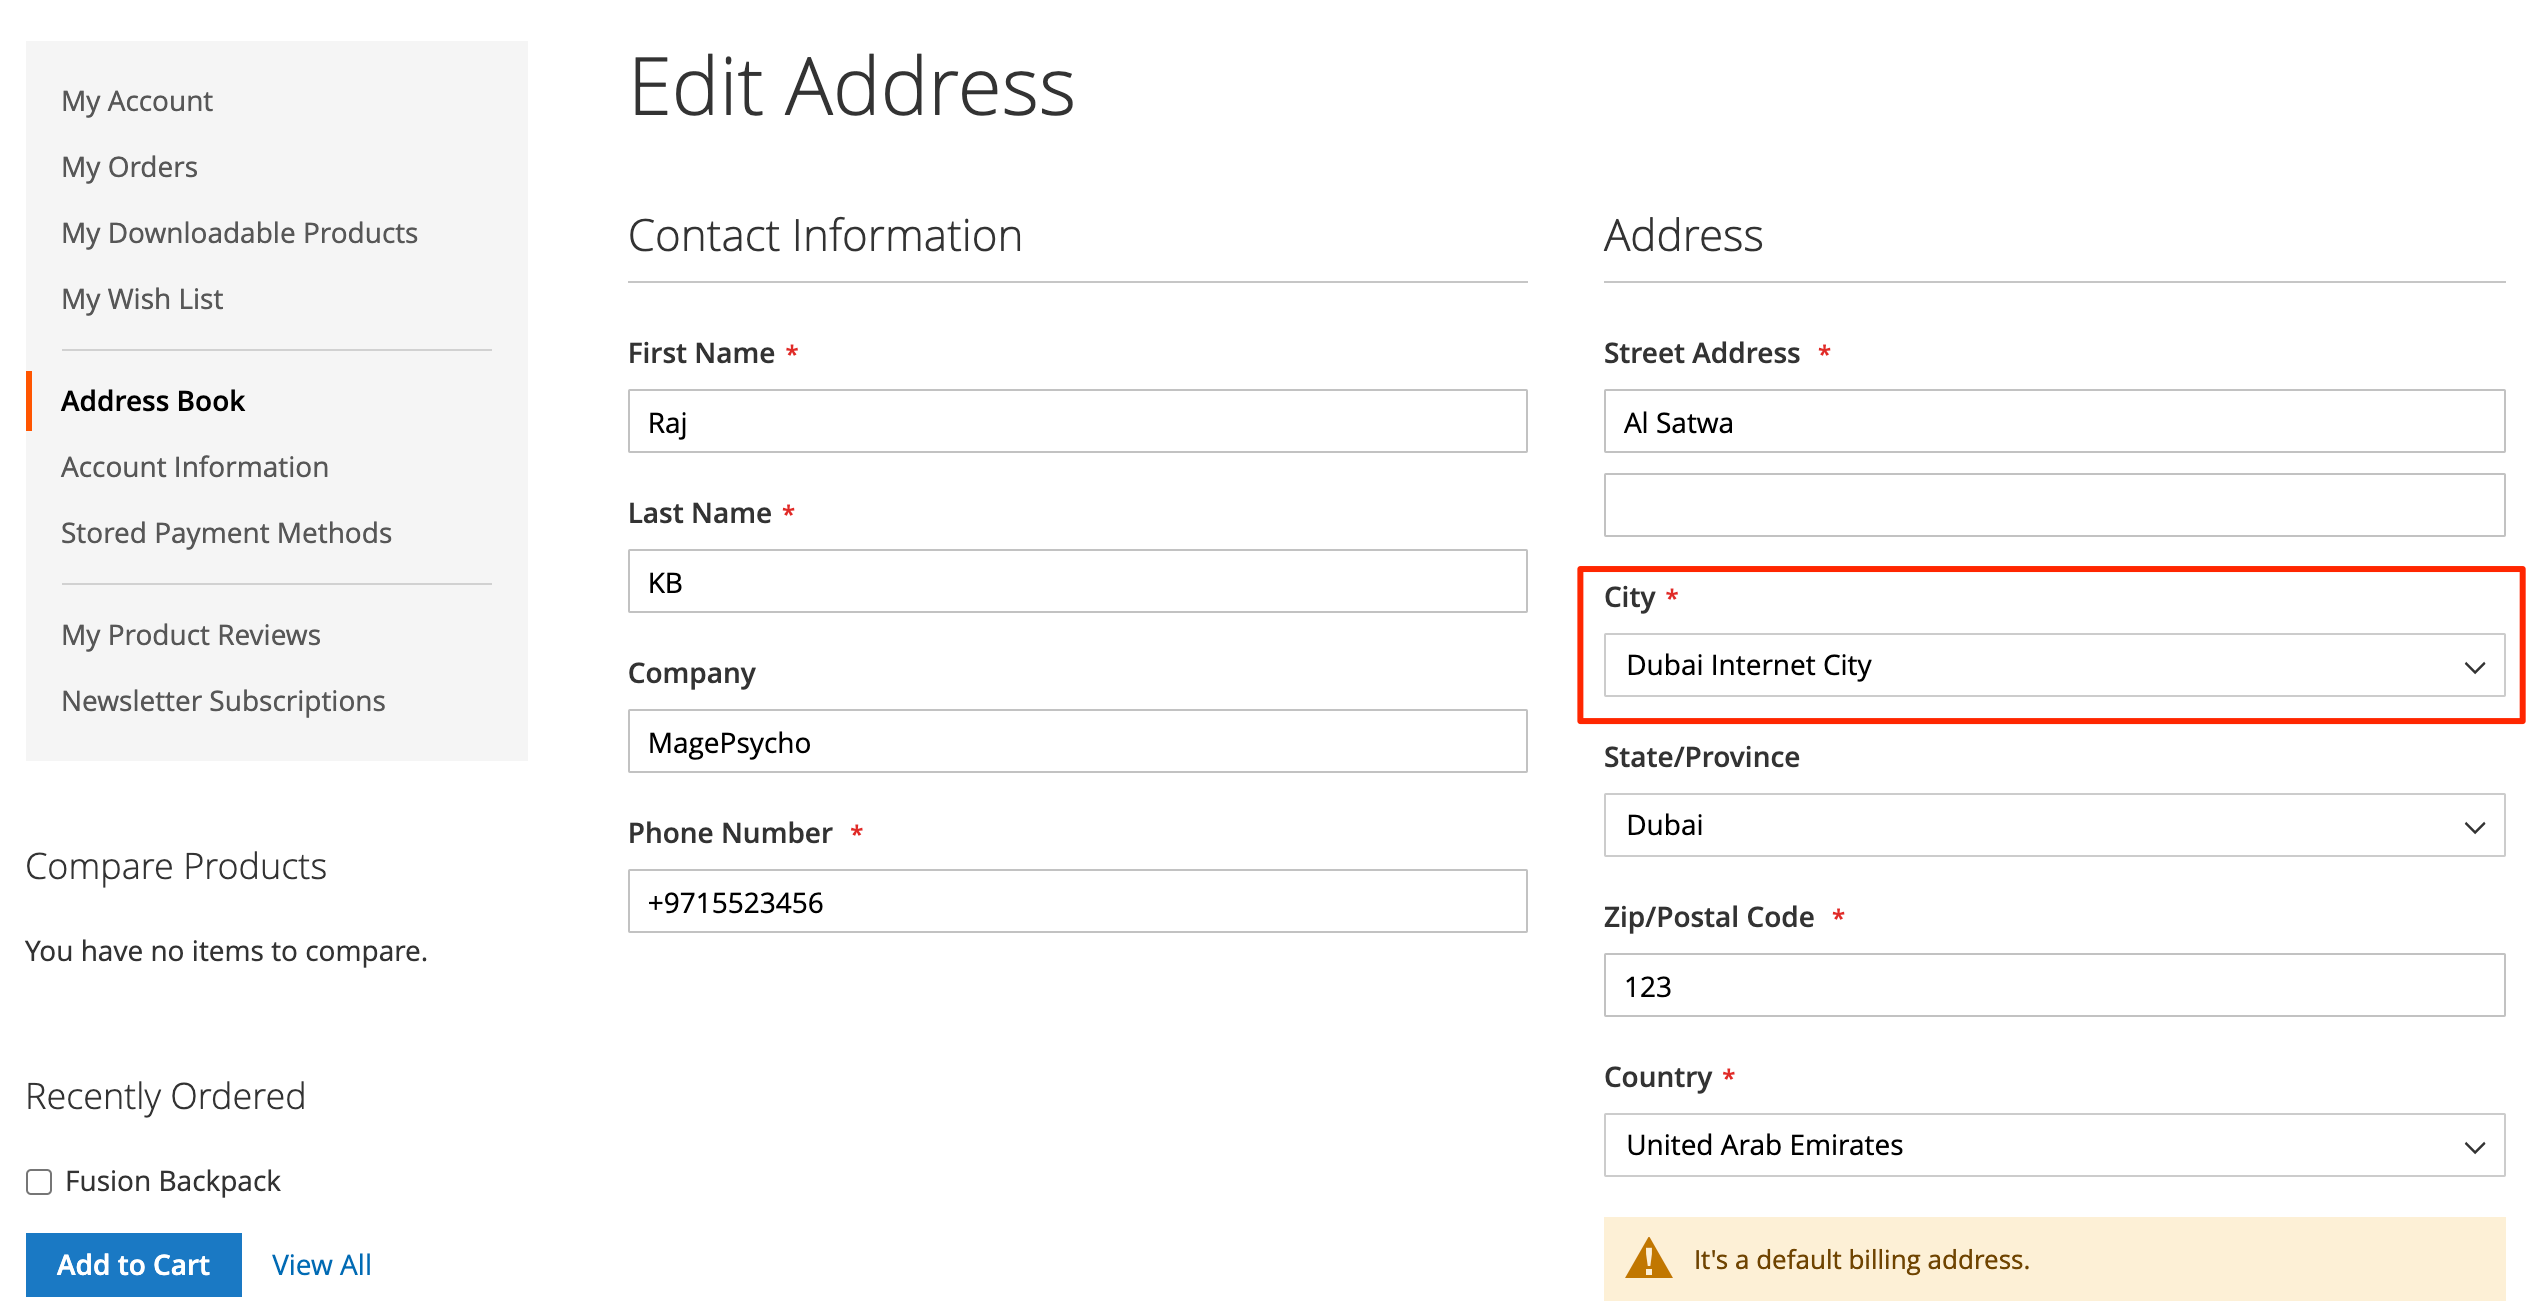 Customer Address City Dropdown